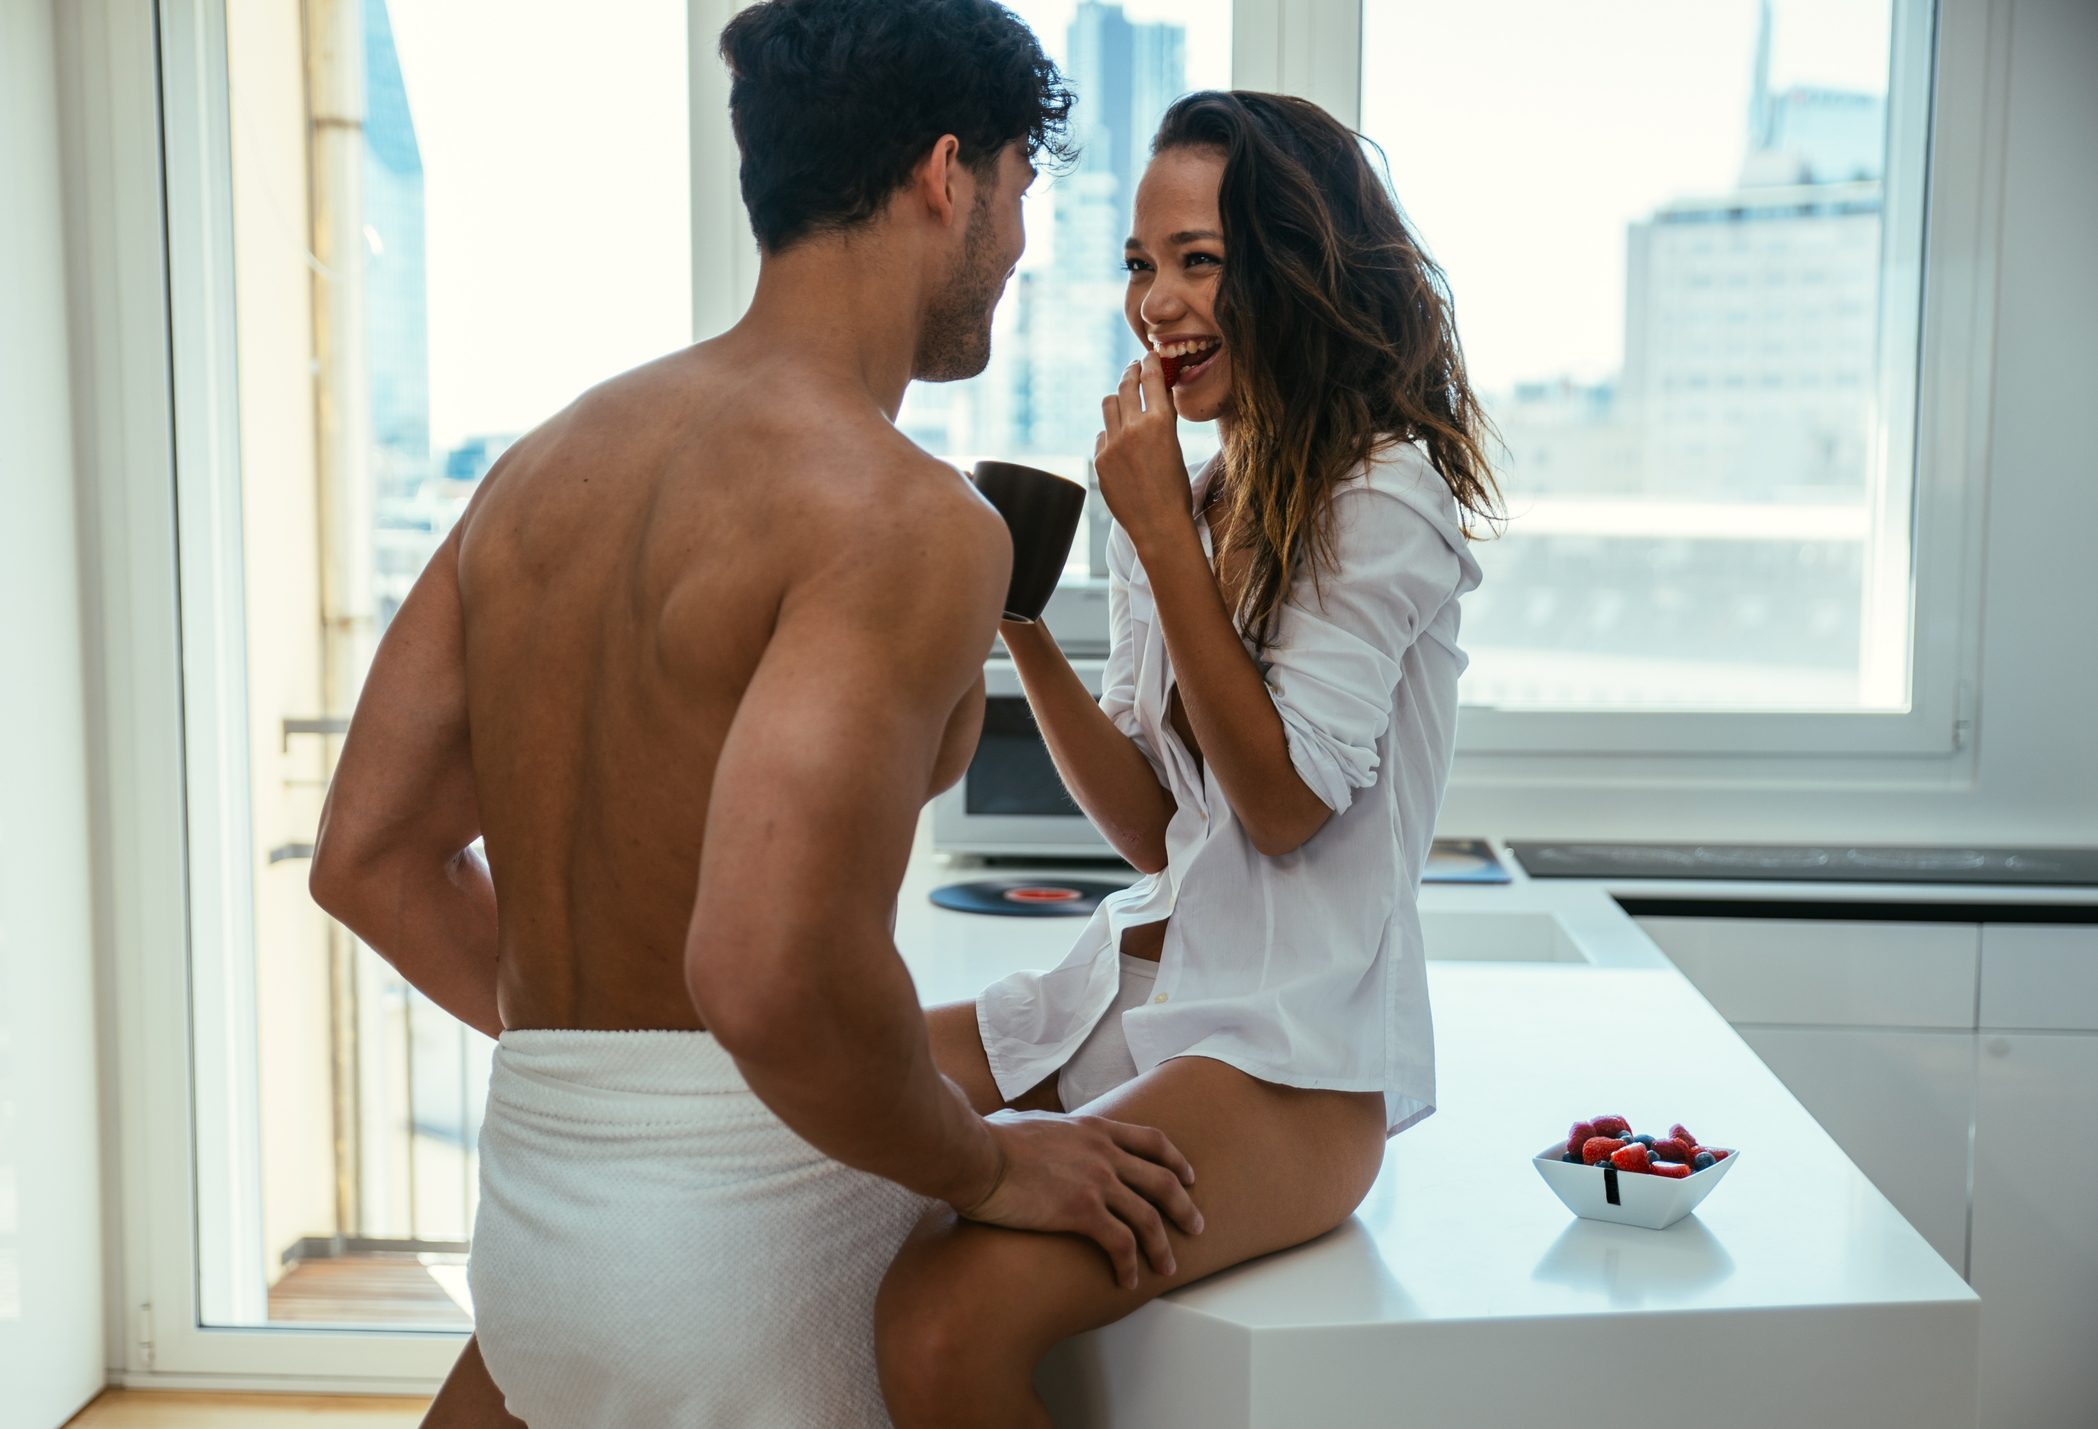 Send these flirty text messages to a girl and check the reaction